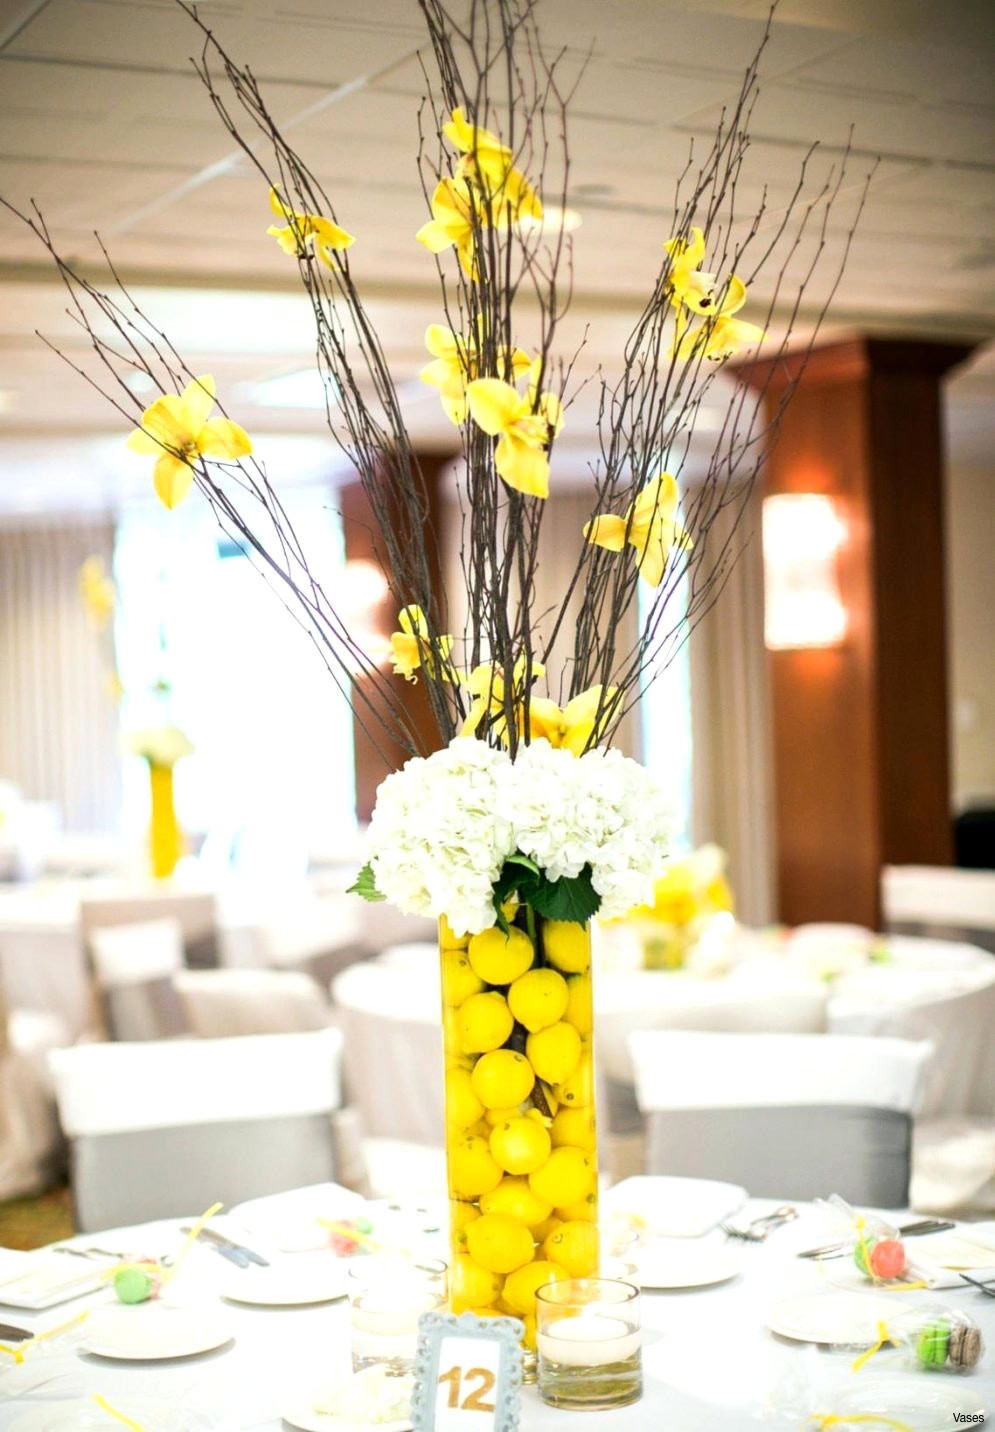 Tall Vase Ideas Of Decorations for Weddings Beautiful Living Room Tall Vase Decor Best Regarding Decorations for Weddings Fresh Diy Home Decor Vaseh Vases Decorative Flower Ideas I 0d Of Decorations